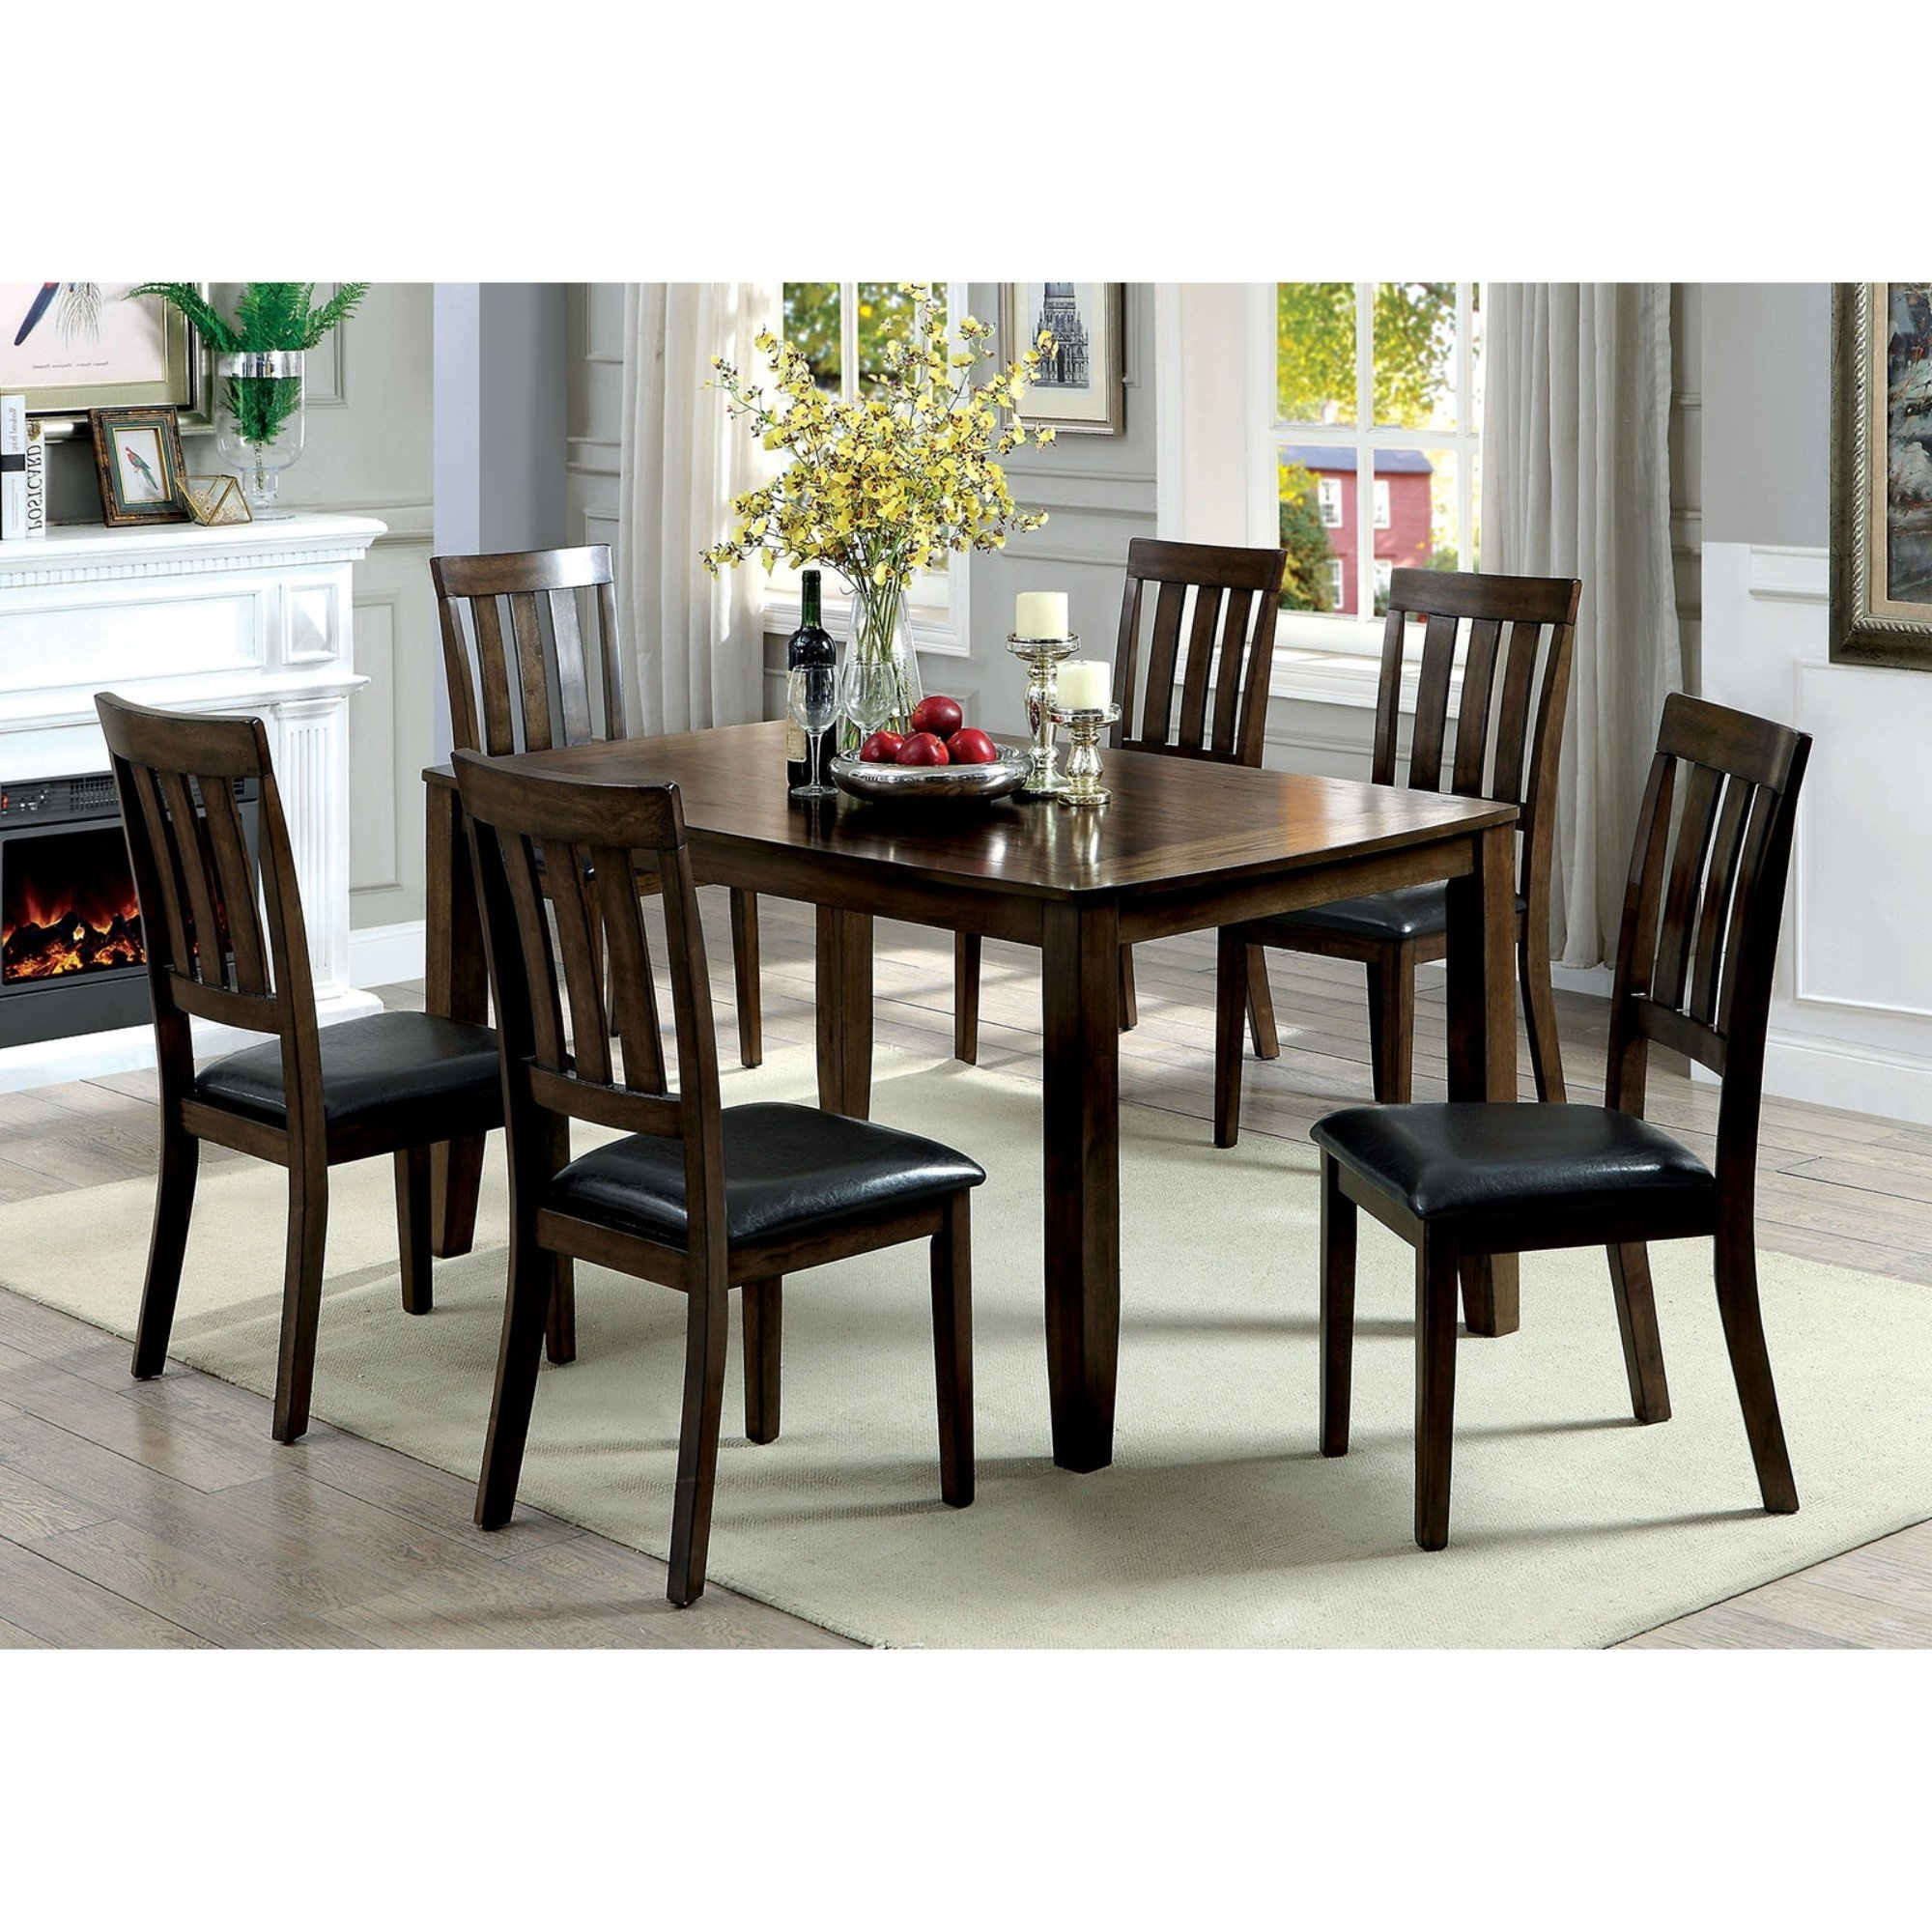 Most Recent Candice Ii 7 Piece Extension Rectangle Dining Sets Intended For Millwood Pines Devon Wooden 7 Piece Counter Height Dining Table Set (View 3 of 25)